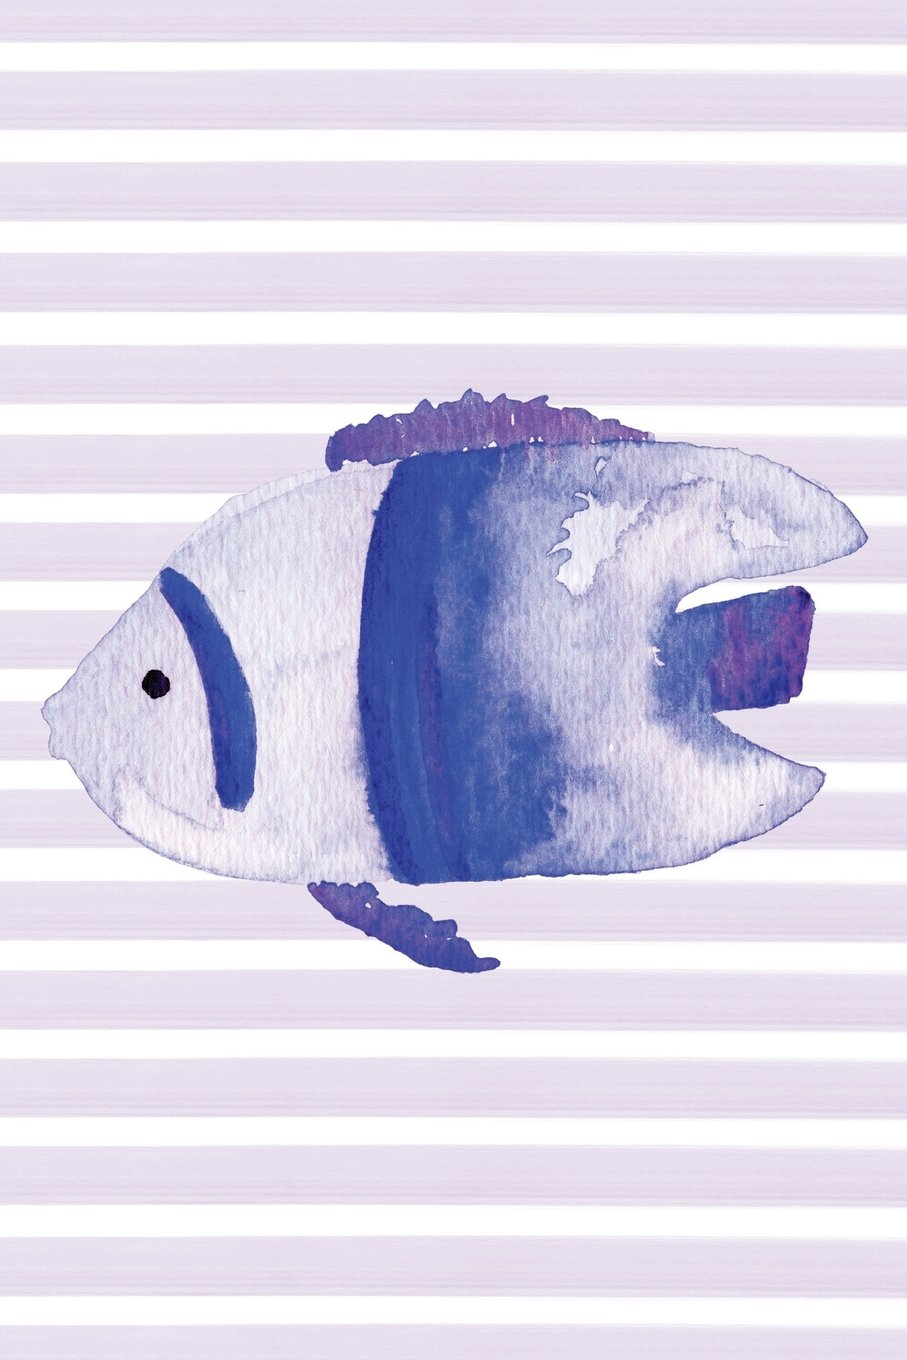 Ocean Fish Watercolor Stripe Journal: Blank Daily Writing Notebook Diary with Ruled Lines (Coastal Beaches & Nautical) pdf